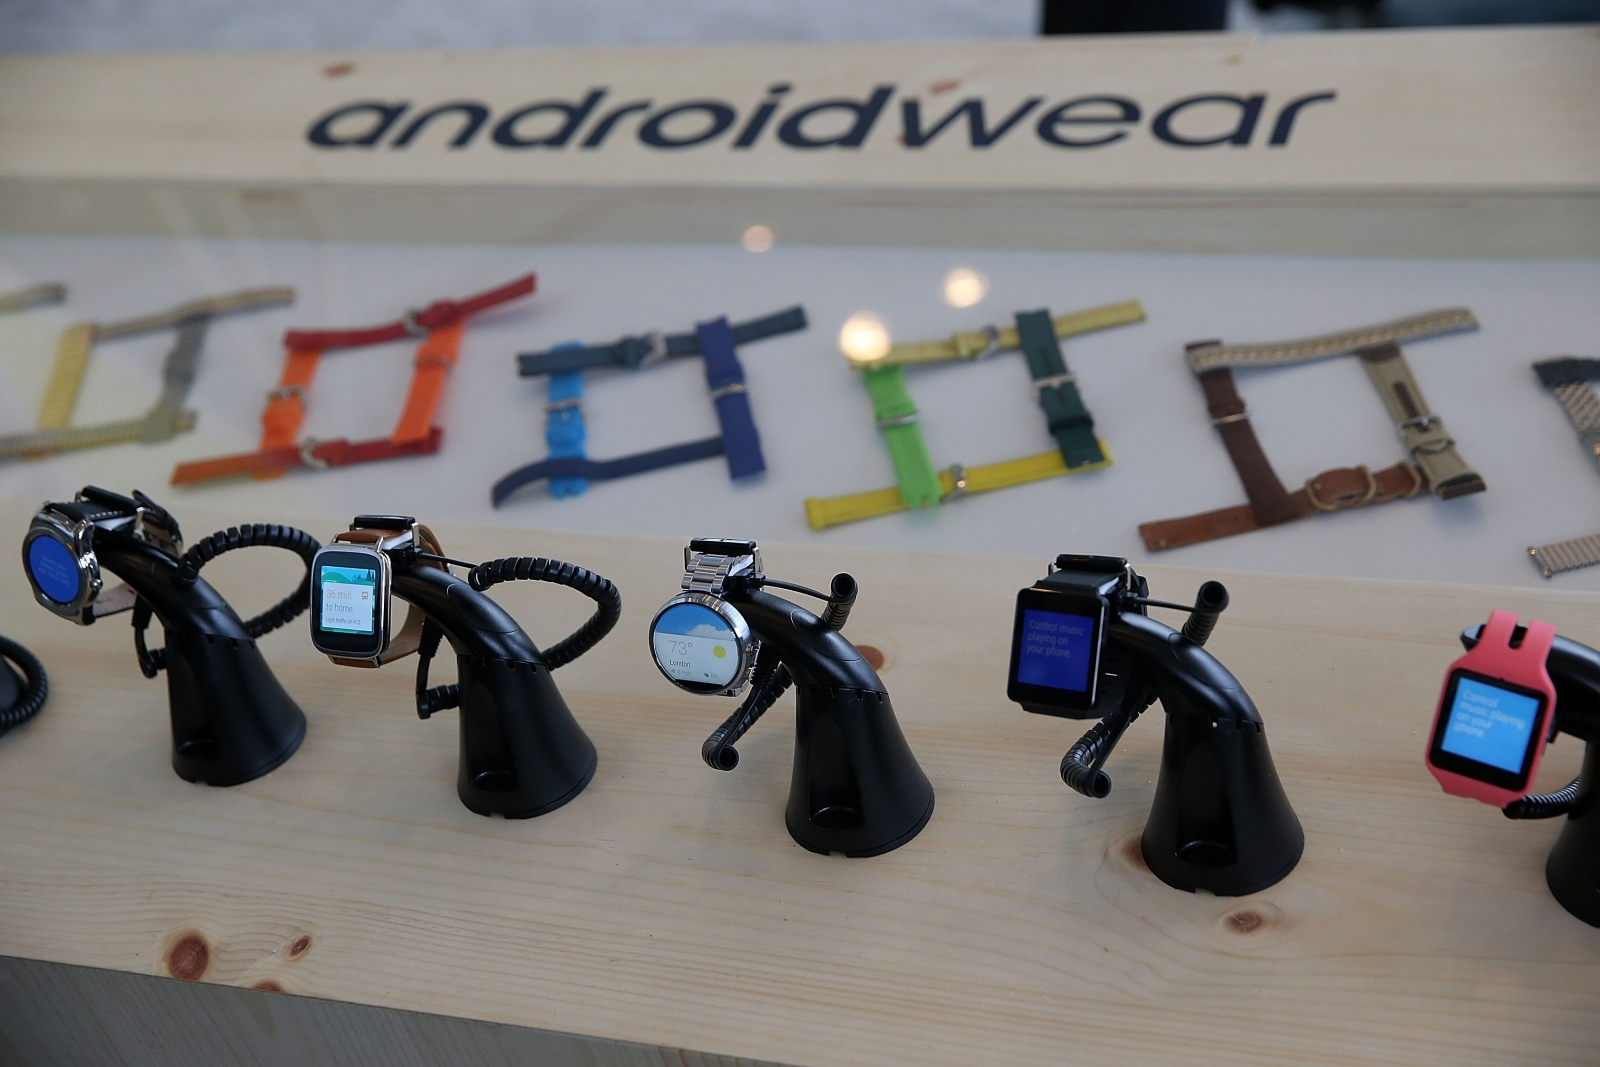 Google building two Android Wear smartwatches